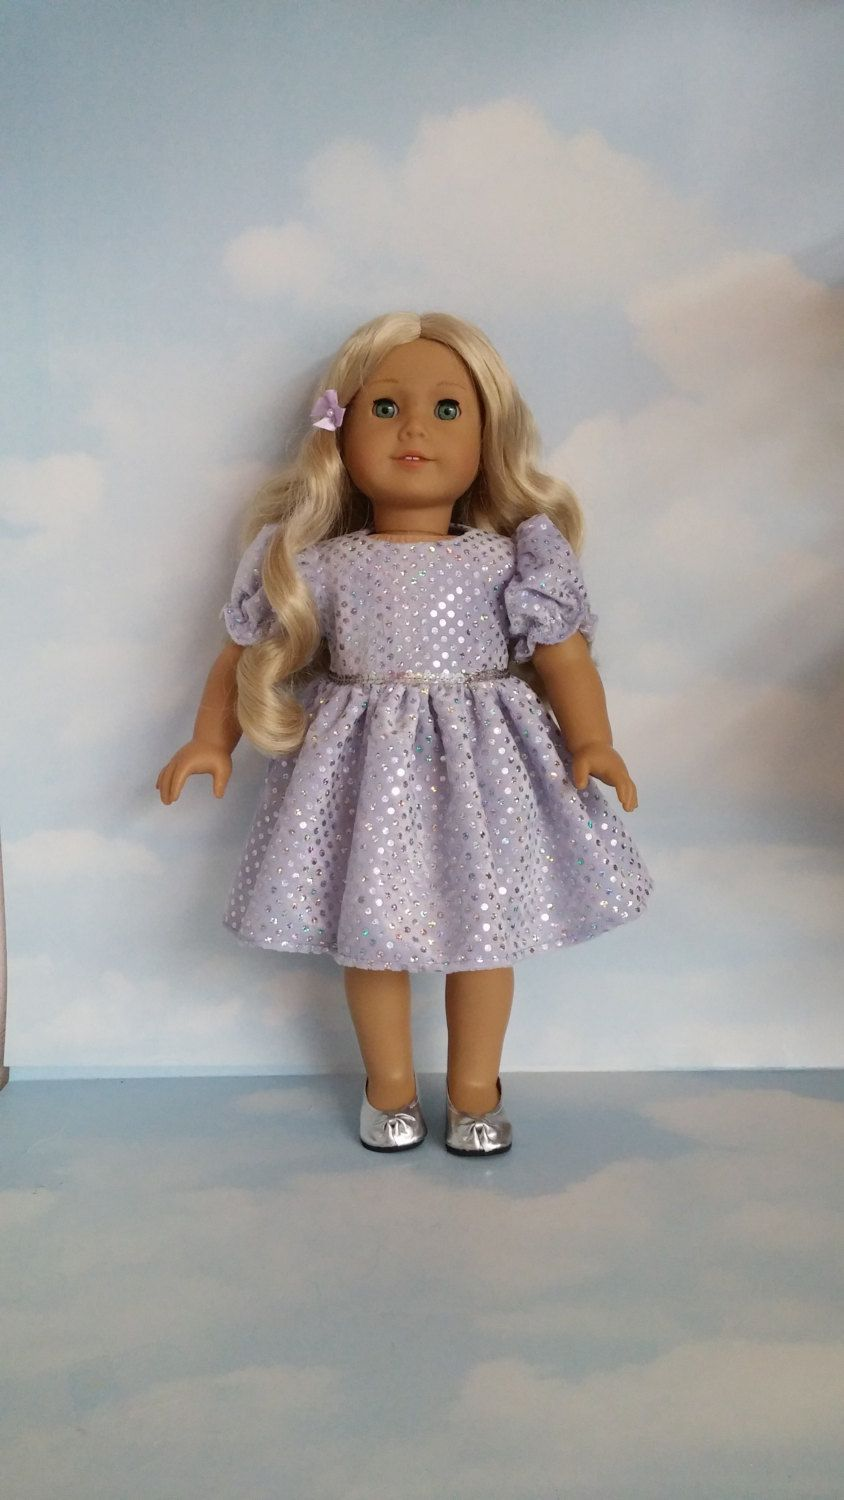 inch doll clothes lilac sequin dress handmade to fit the